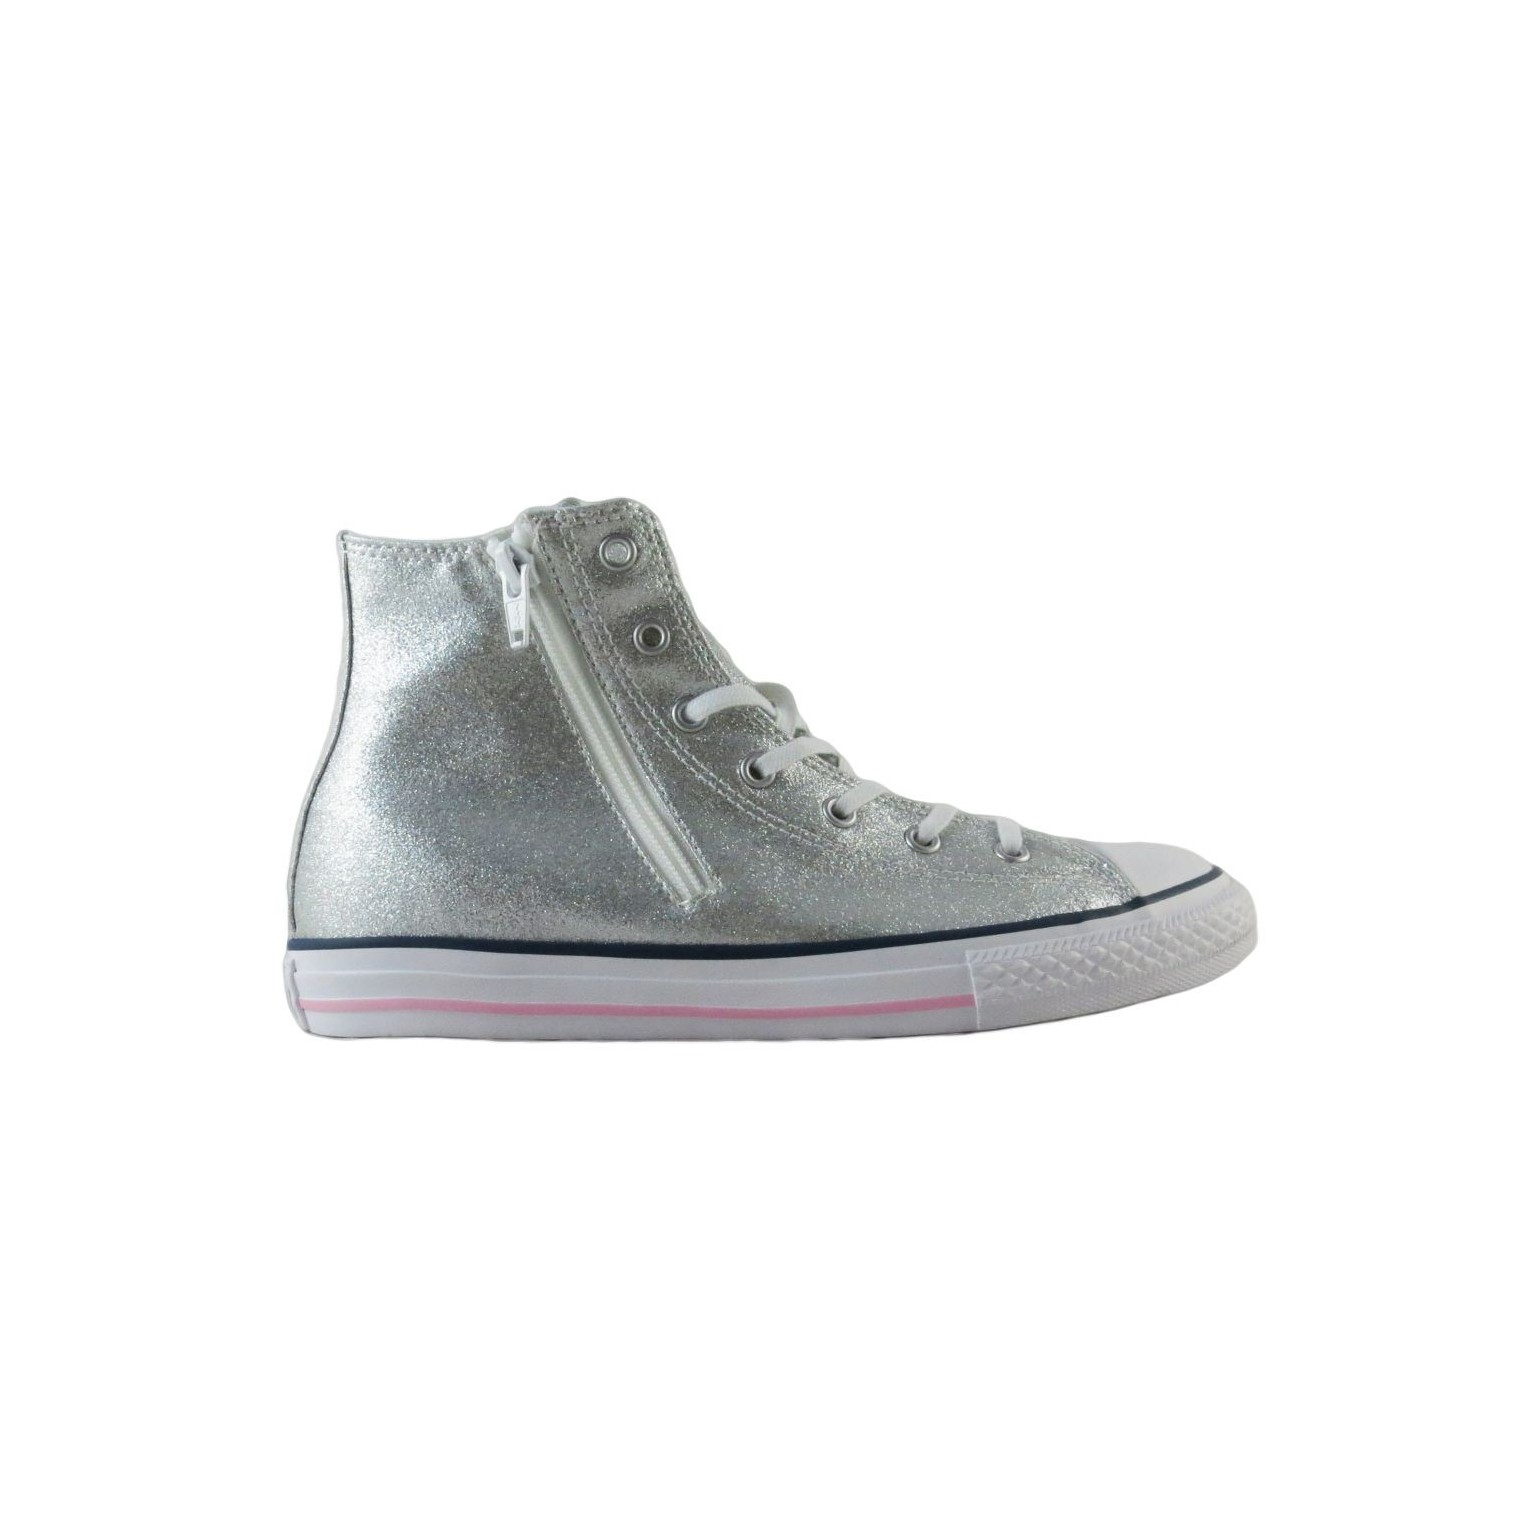 Converse All Star Women's High Sneakers HI Canvas Side Zip 648506C